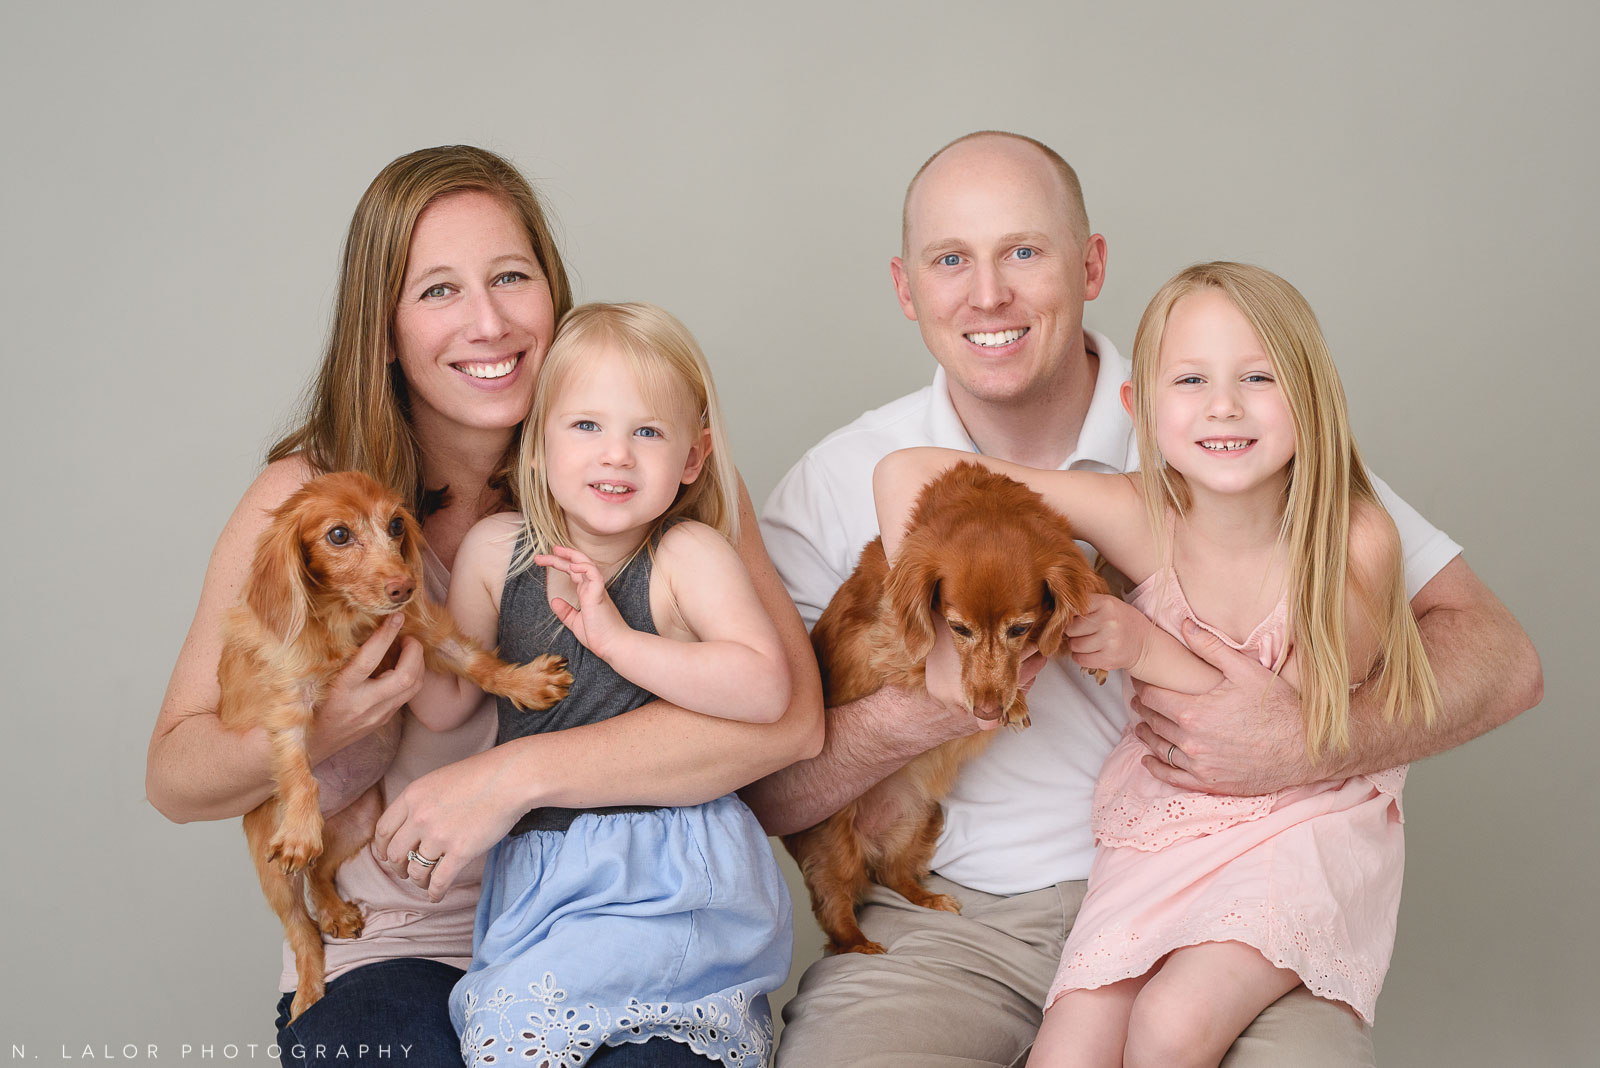 Family portrait with dogs. Family photo session with N. Lalor Photography. Greenwich, Connecticut studio photographer.